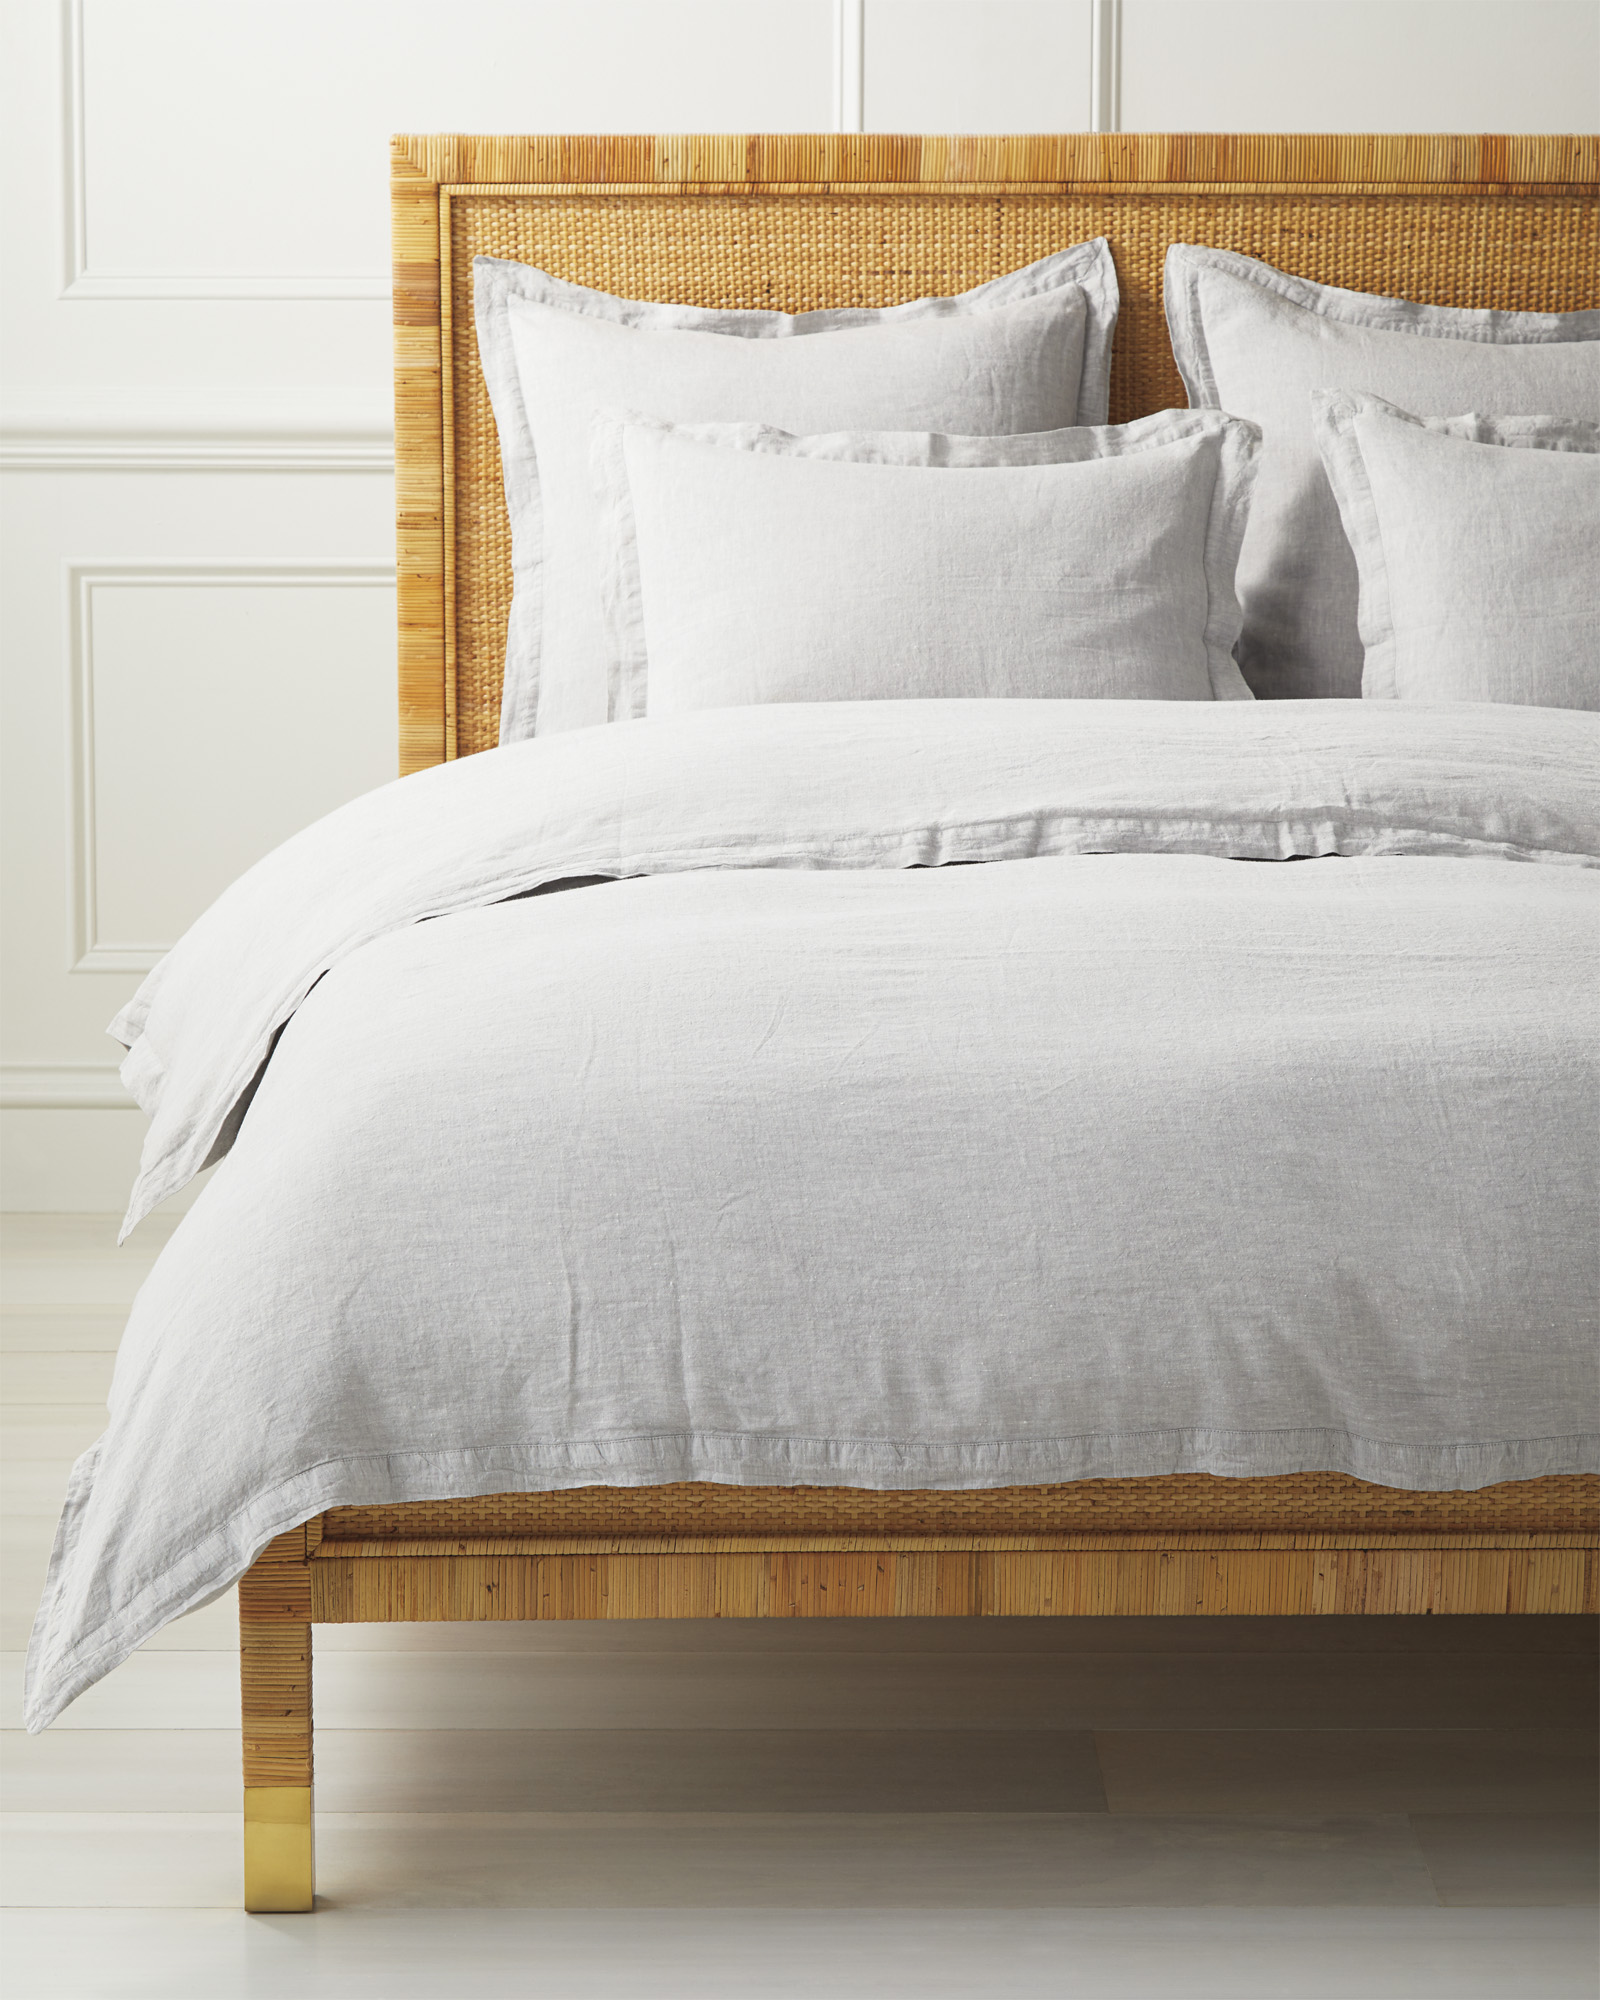 Cavallo Bedding Bundle, Smoke Chambray